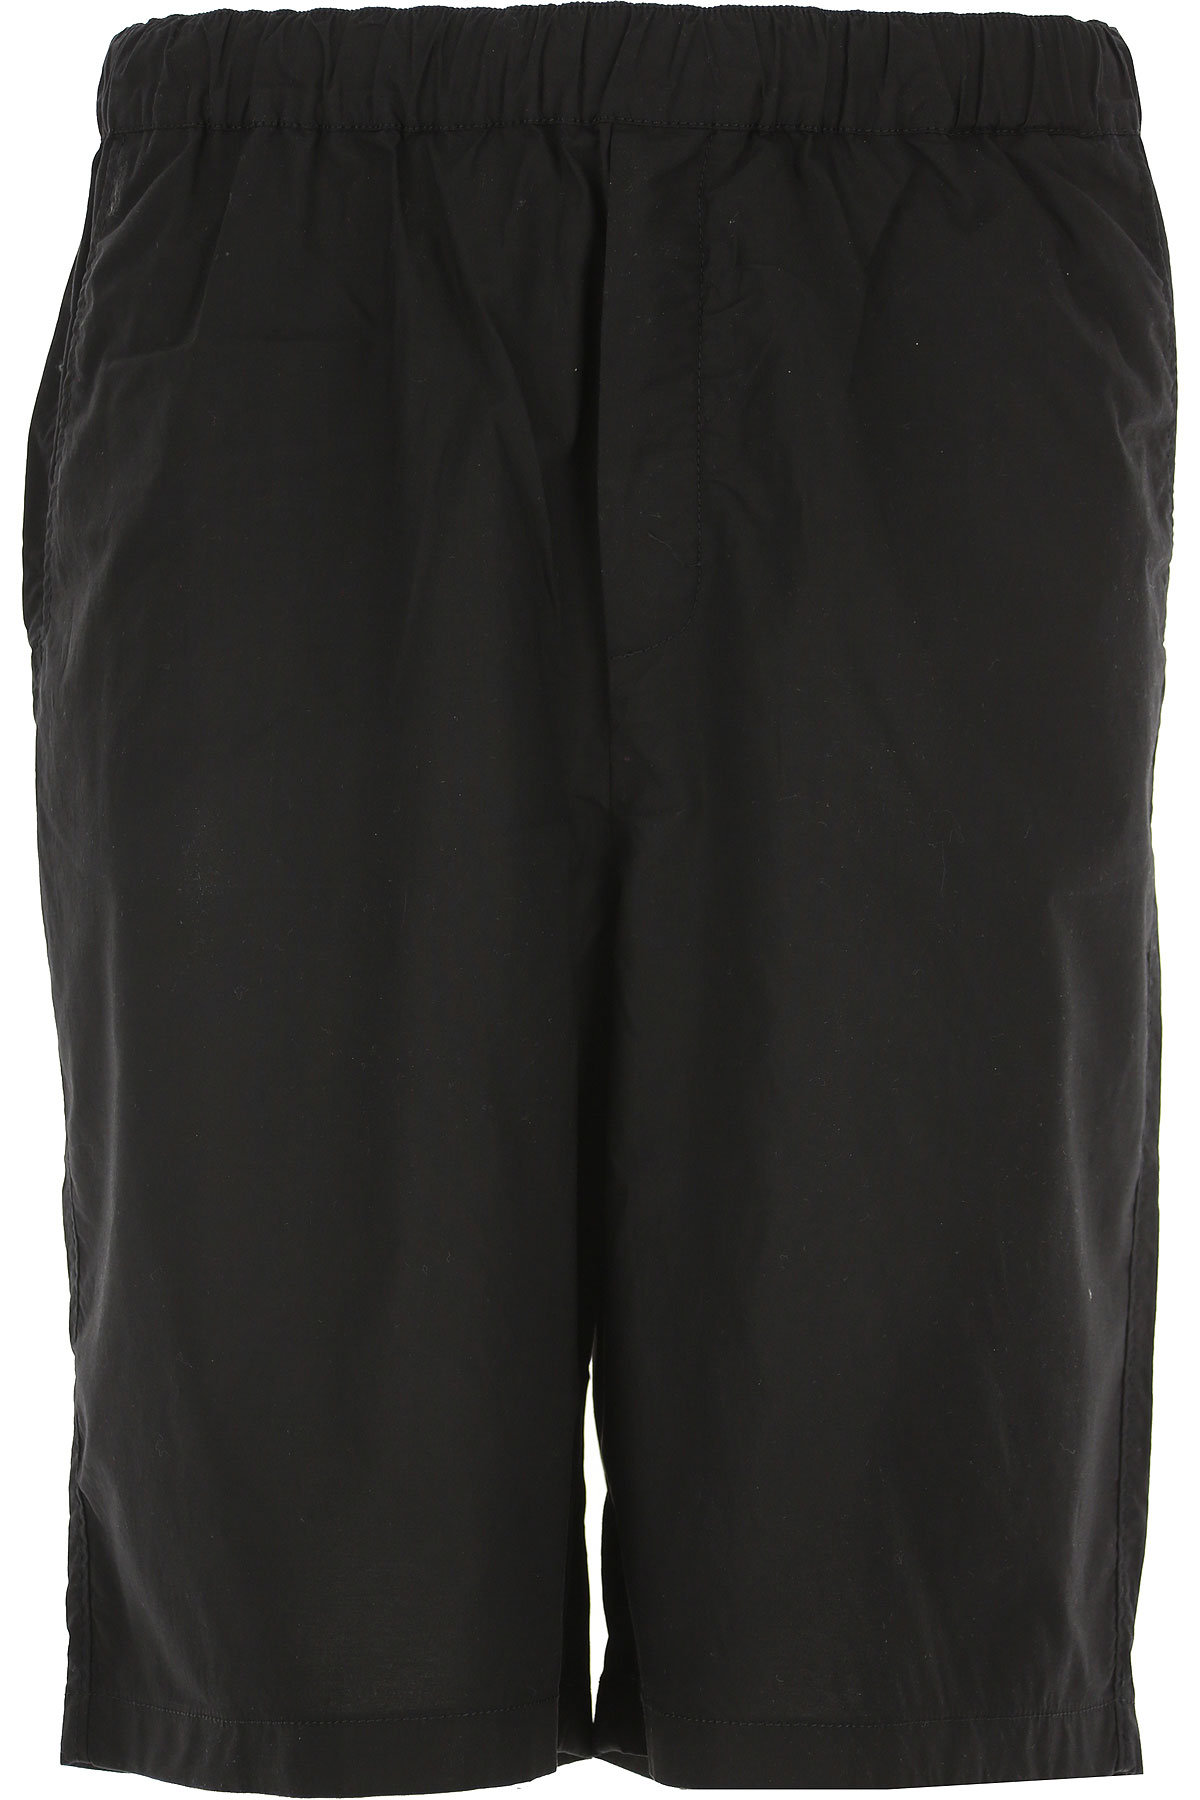 Alexander McQueen McQ Shorts for Men On Sale in Outlet, Black, polyester, 2019, 30 32 36